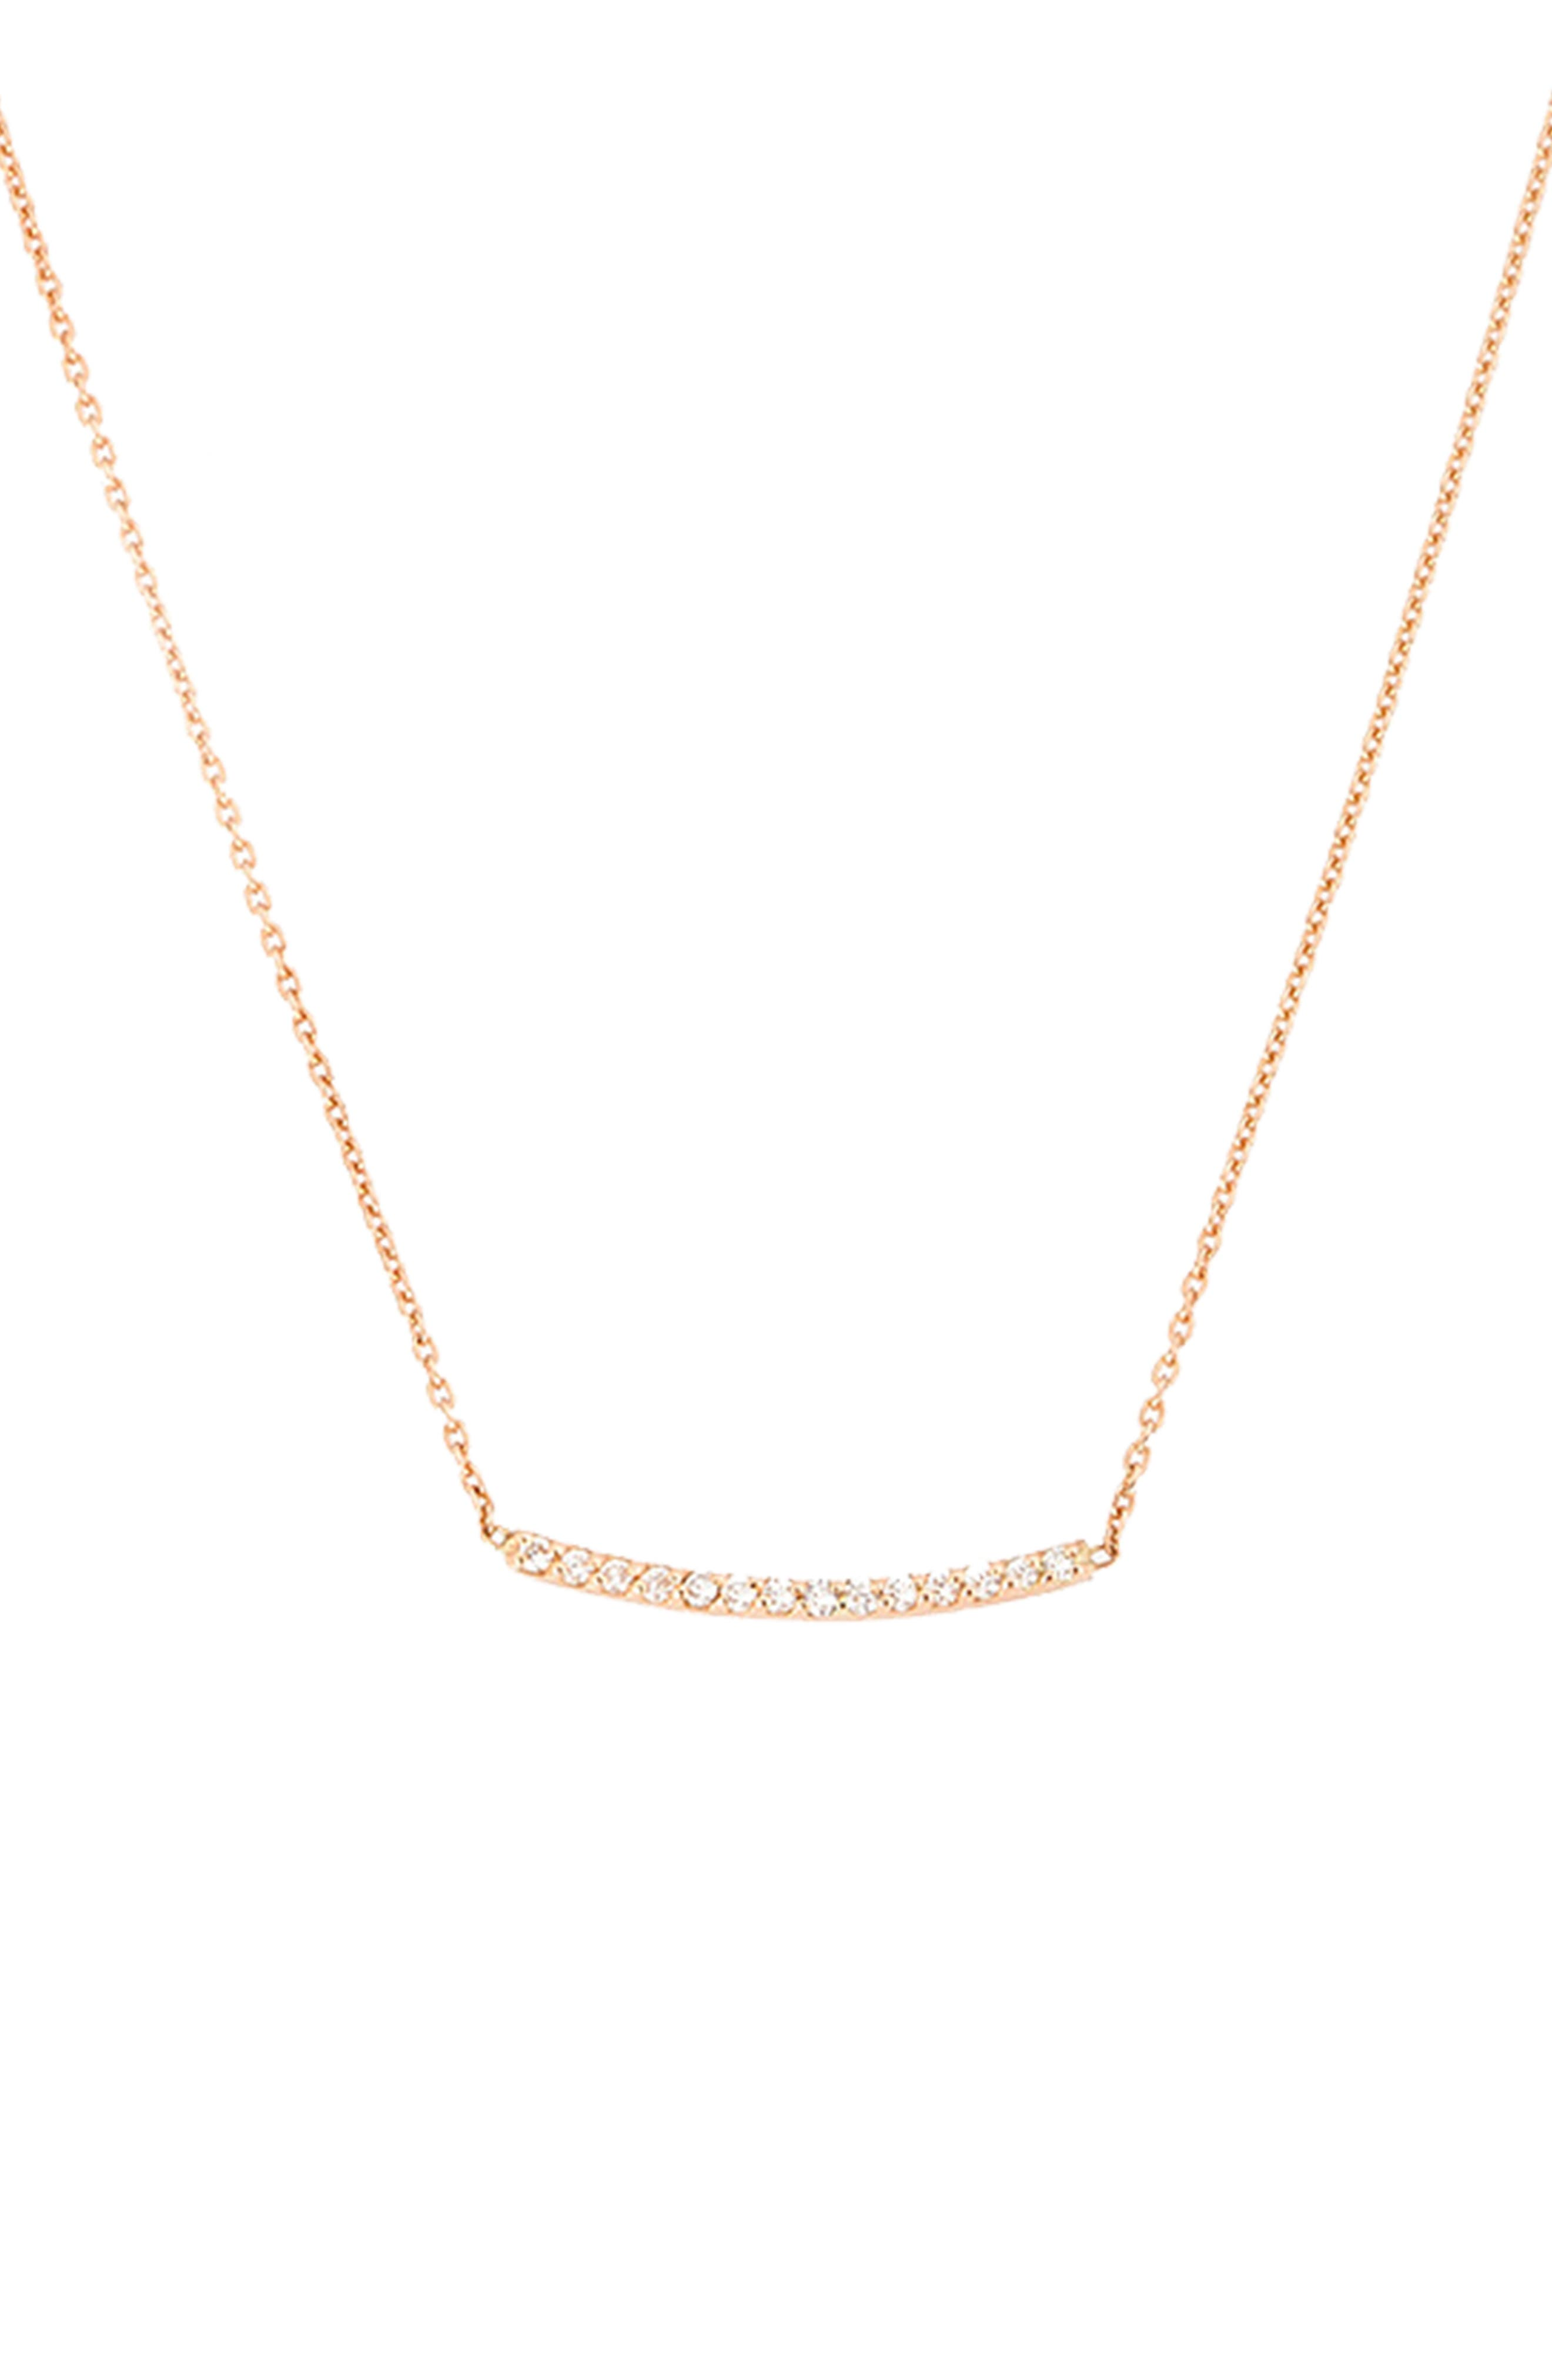 Alternate Image 1 Selected - Kismet by Milka Lumiere Diamond Bar Necklace